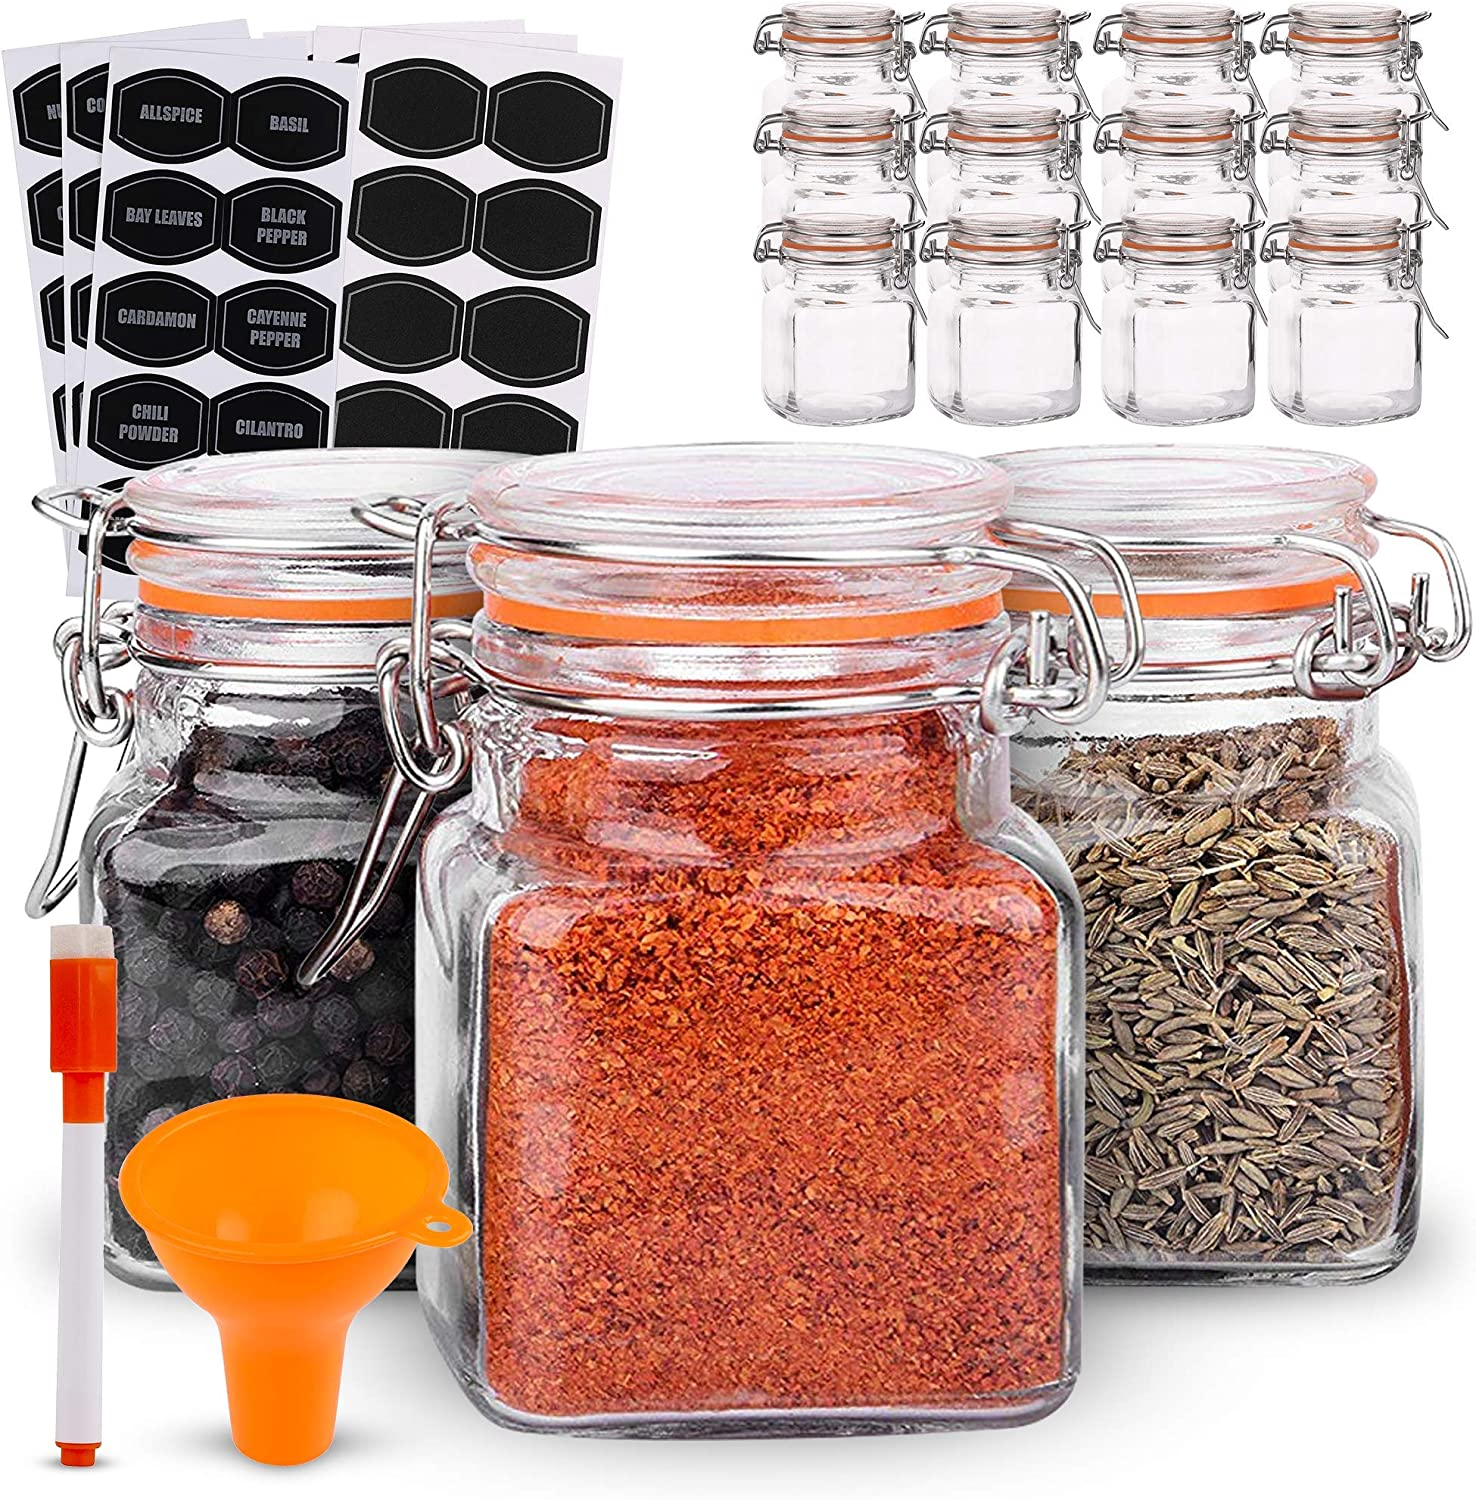 Yarlung Set of 4 Glass Seasoning Box with Plastic Tray and Serving Spoons Gourmet/Salt Containers Condiment Canisters Spice Jars for Kitchen Cooking Supplies Seasoning Not Included